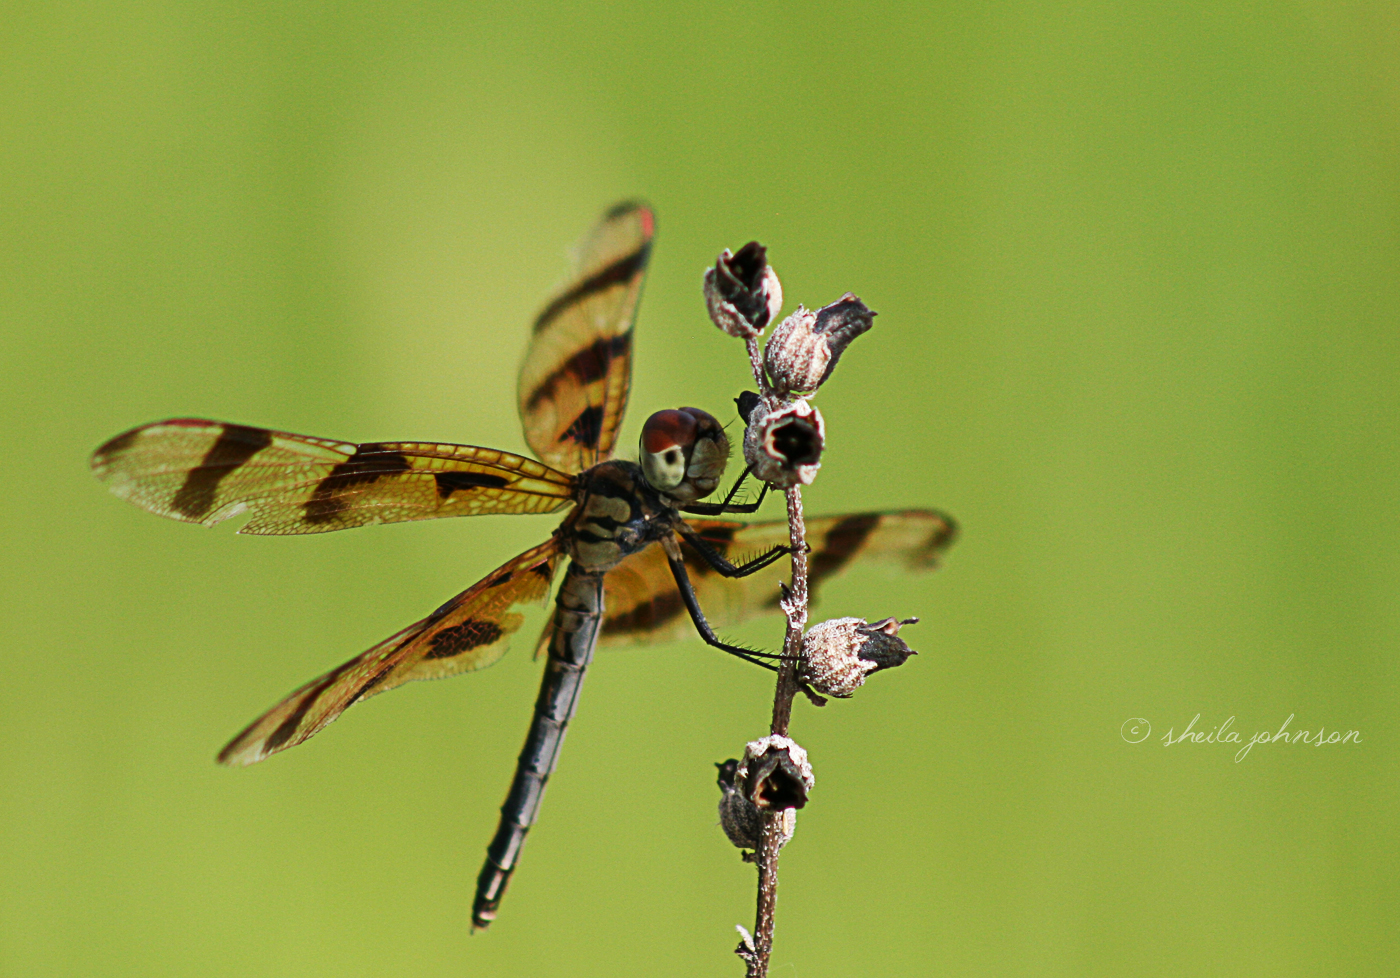 Ahhh, The Halloween Pennant Dragonfly! They Are One Of The Few Dragonflies That Seem To Enjoy Being Photographed. It Looks A Lot Like The Painted Skimmer -- Those Tiny Little Red Spots On Its Wings (Which The Painted Skimmer Doesn't Have) Give It Away.